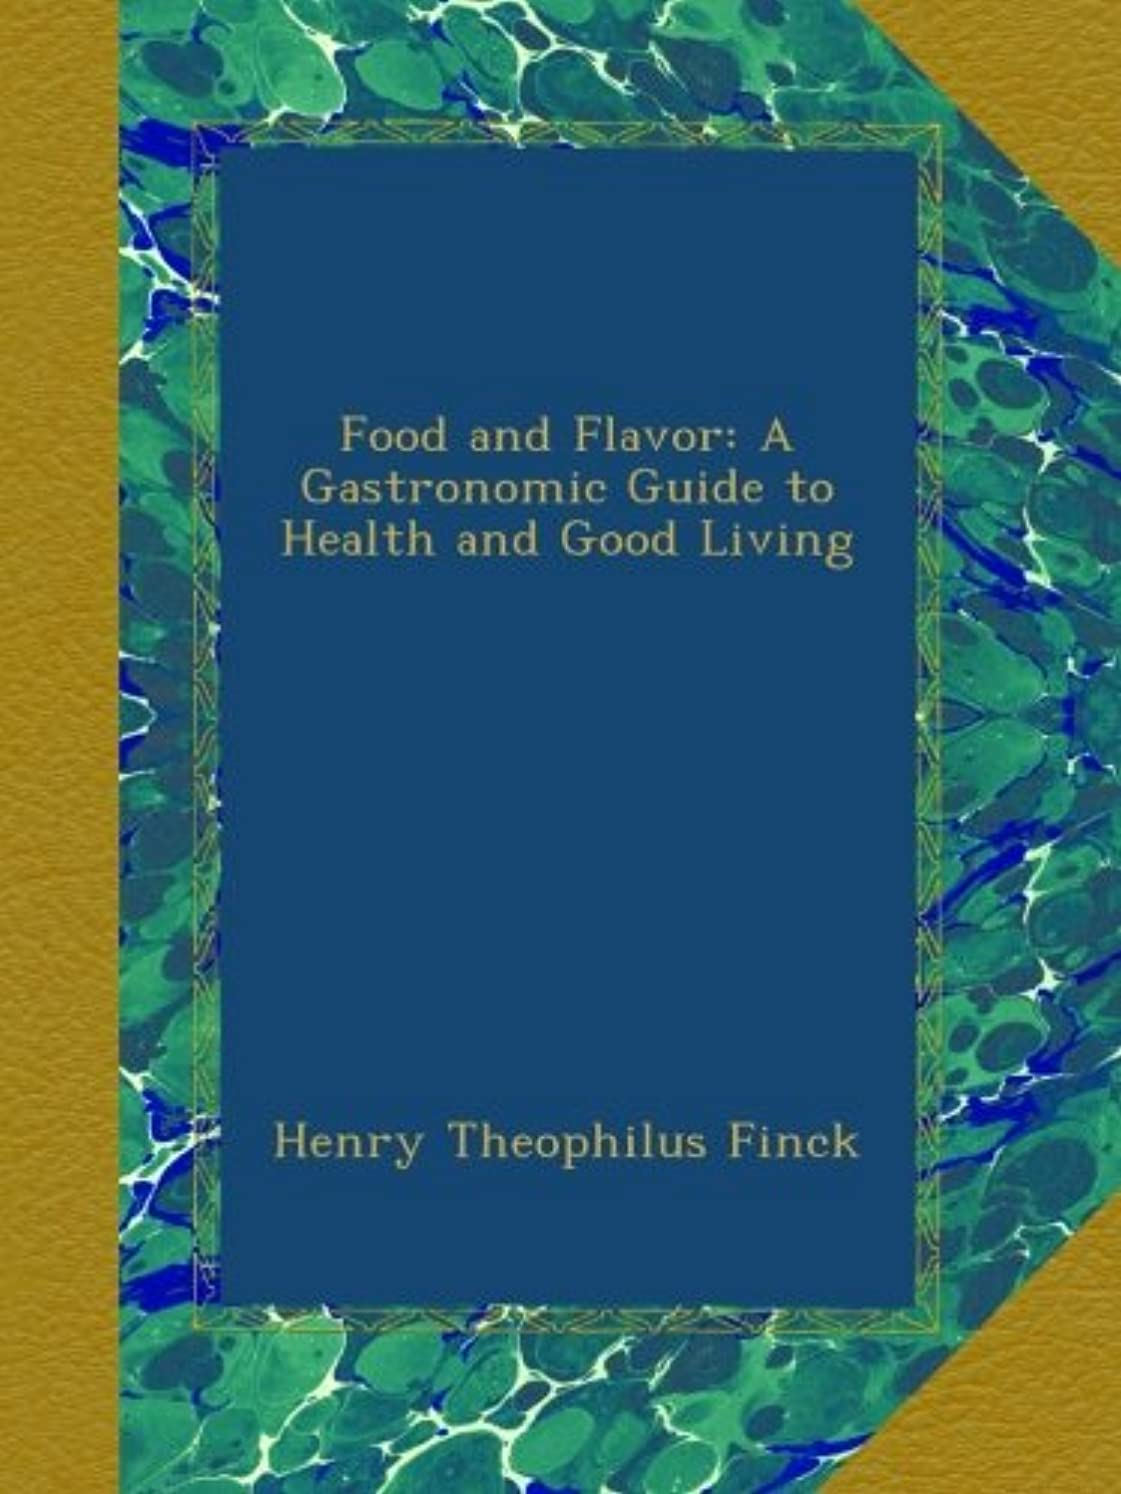 十のスコア管理するFood and Flavor: A Gastronomic Guide to Health and Good Living